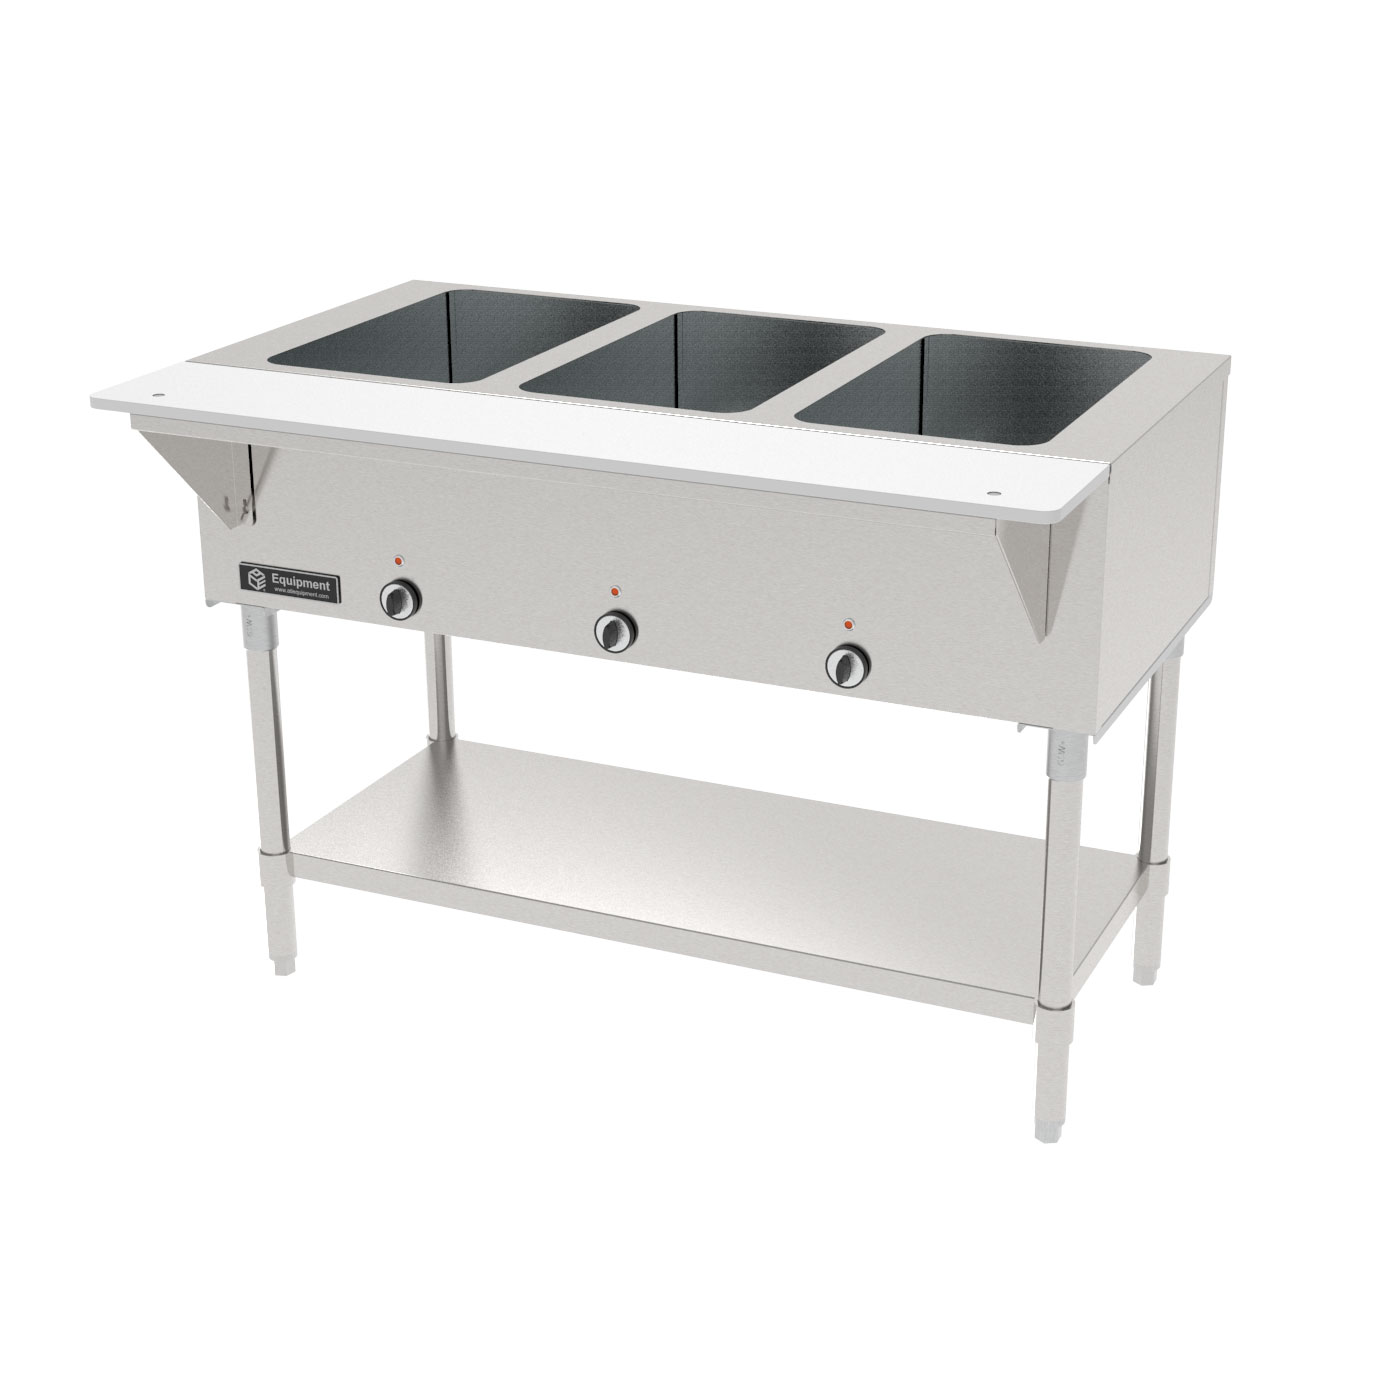 GSW USA ST-3WOE-120 serving counter, hot food, electric